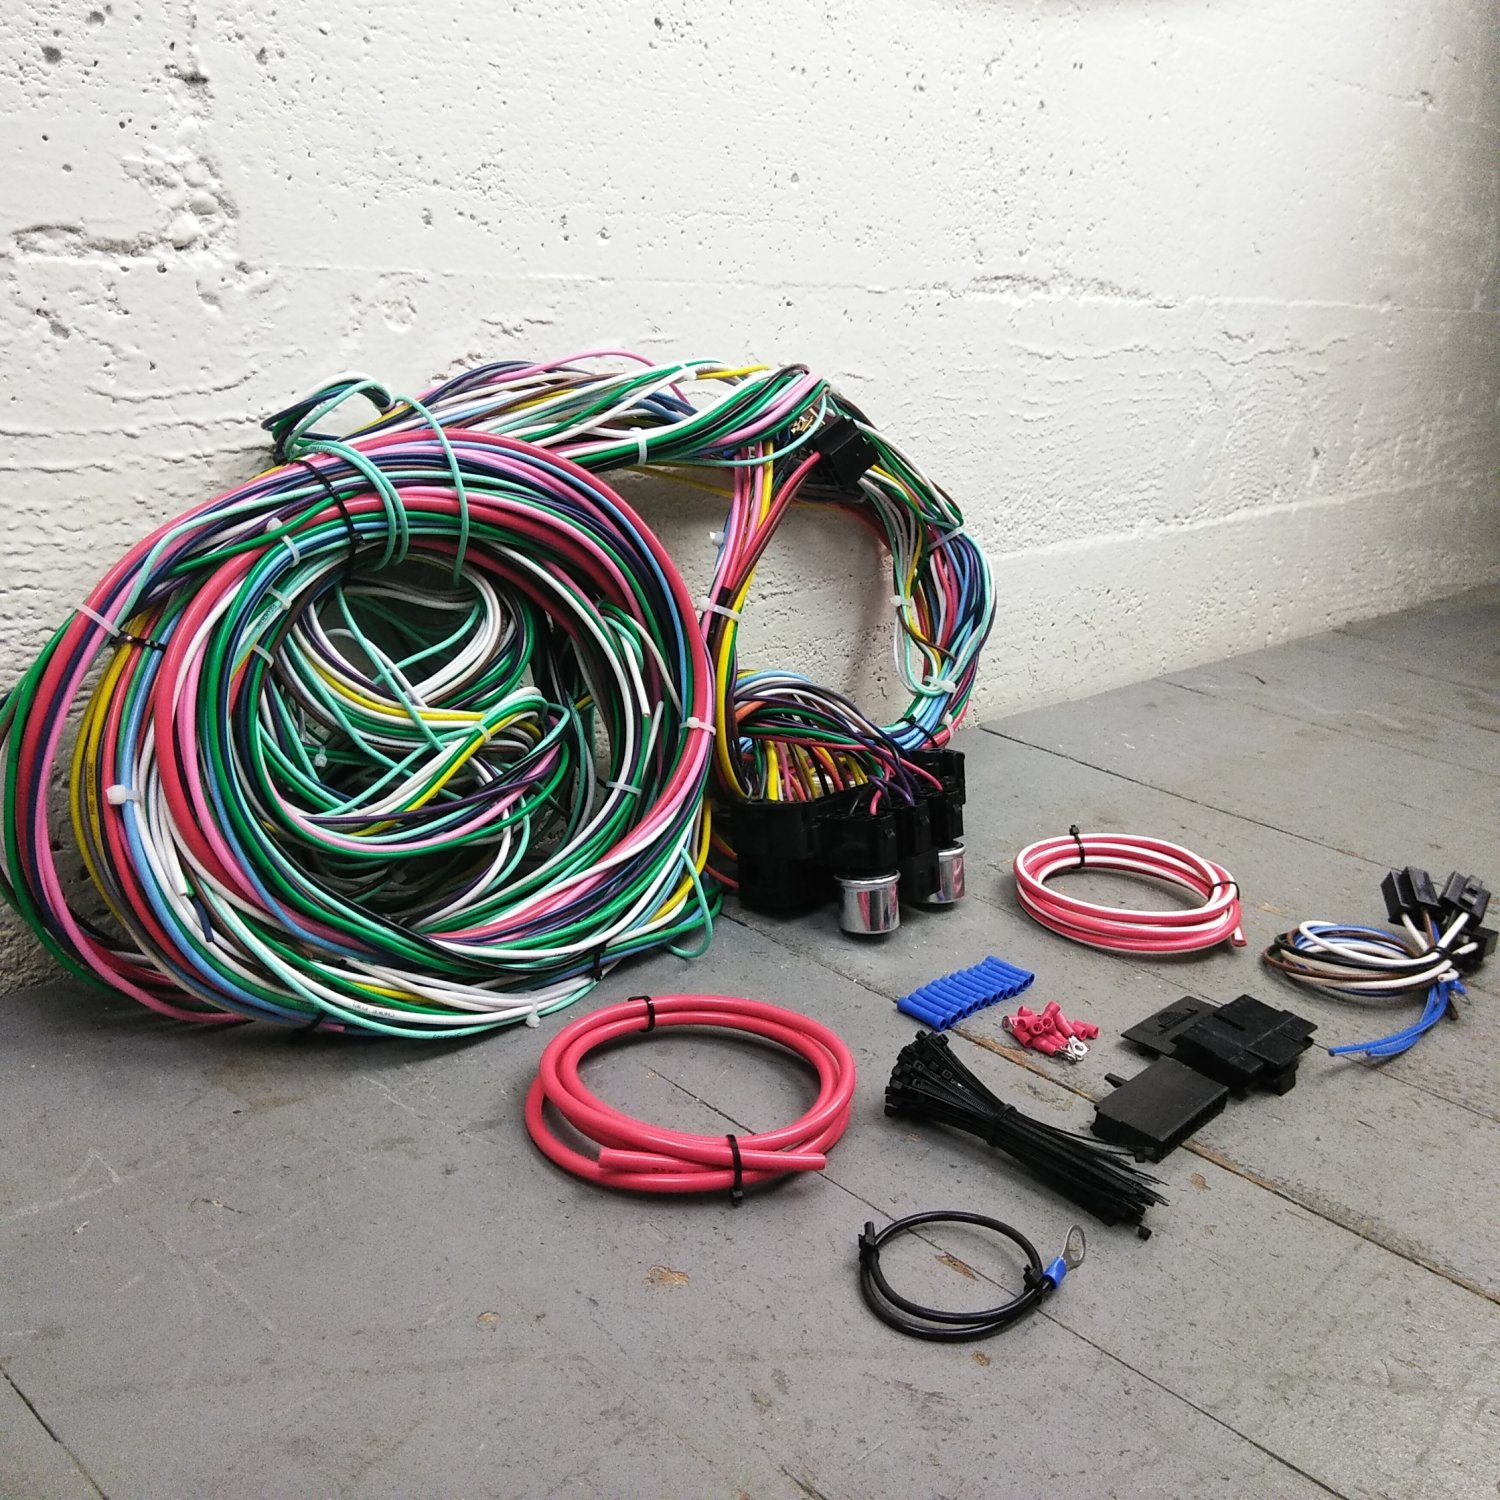 hight resolution of 1958 and earlier plymouth wire harness upgrade kit fits painless terminal new bar product description c